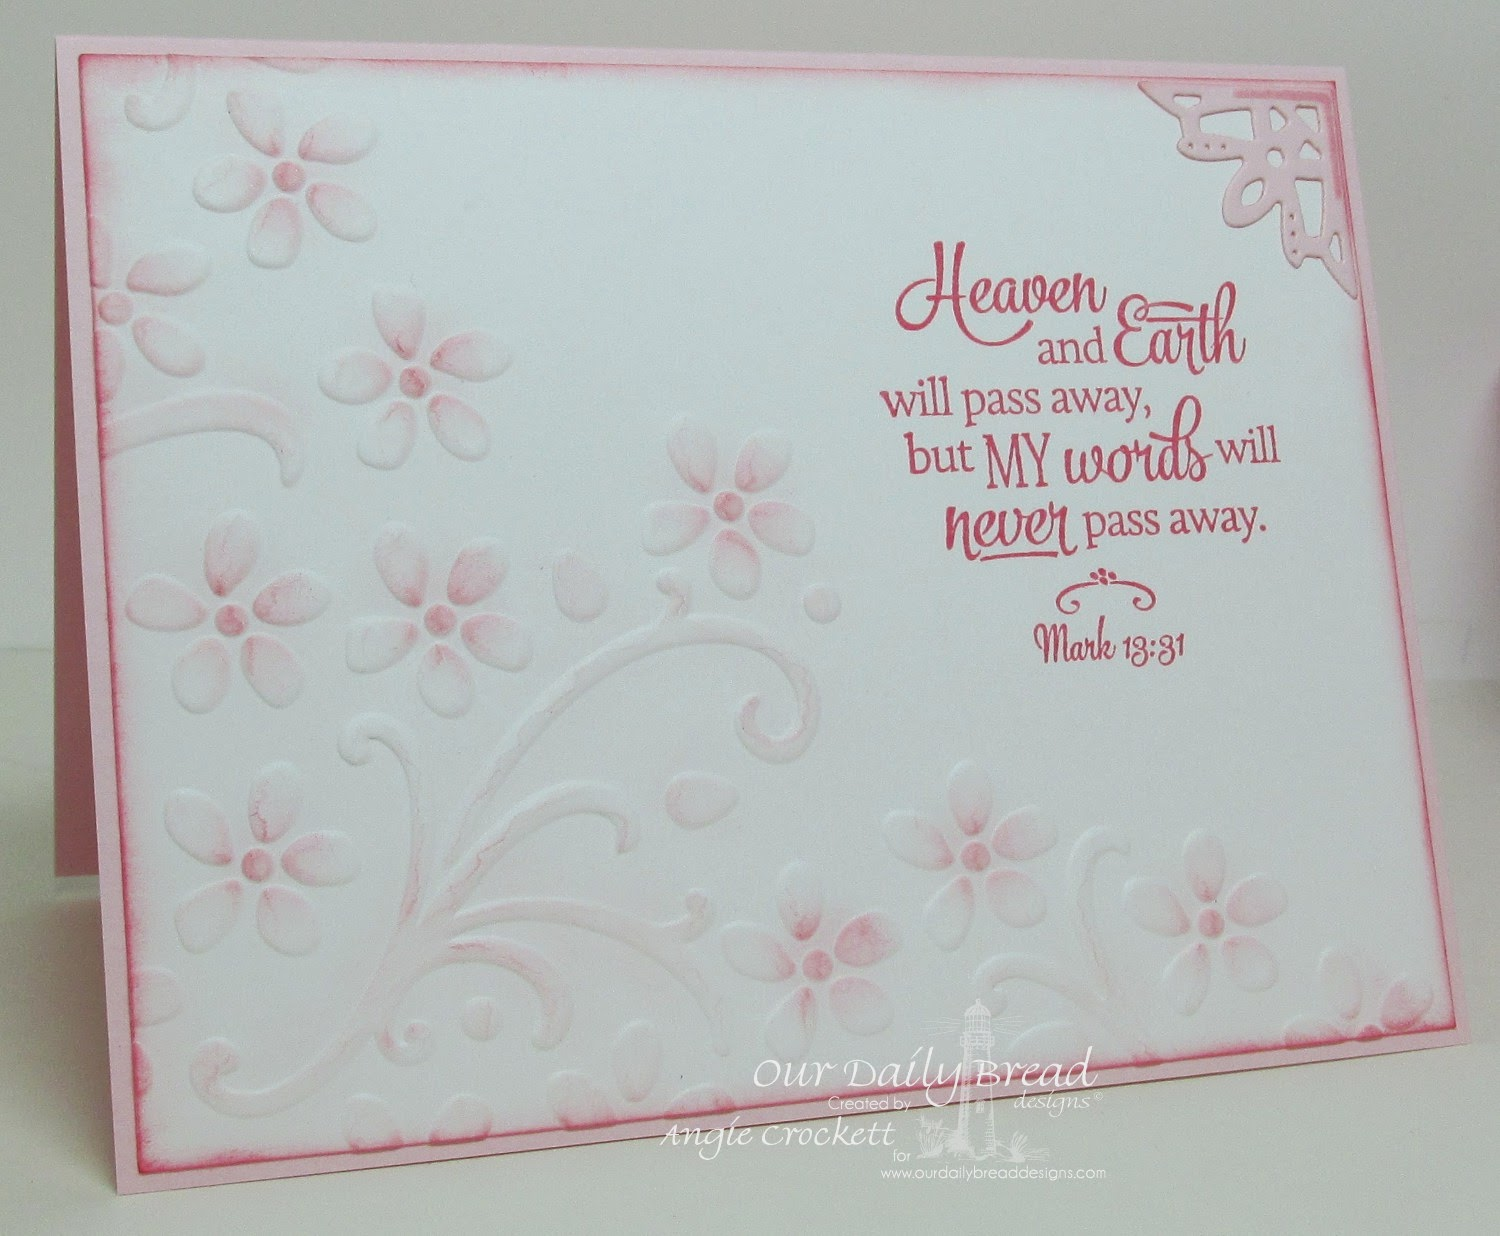 ODBD Scripture Collection 12, ODBD Custom Ornate Borders and Flower Die Set, Card Designer Angie Crockett